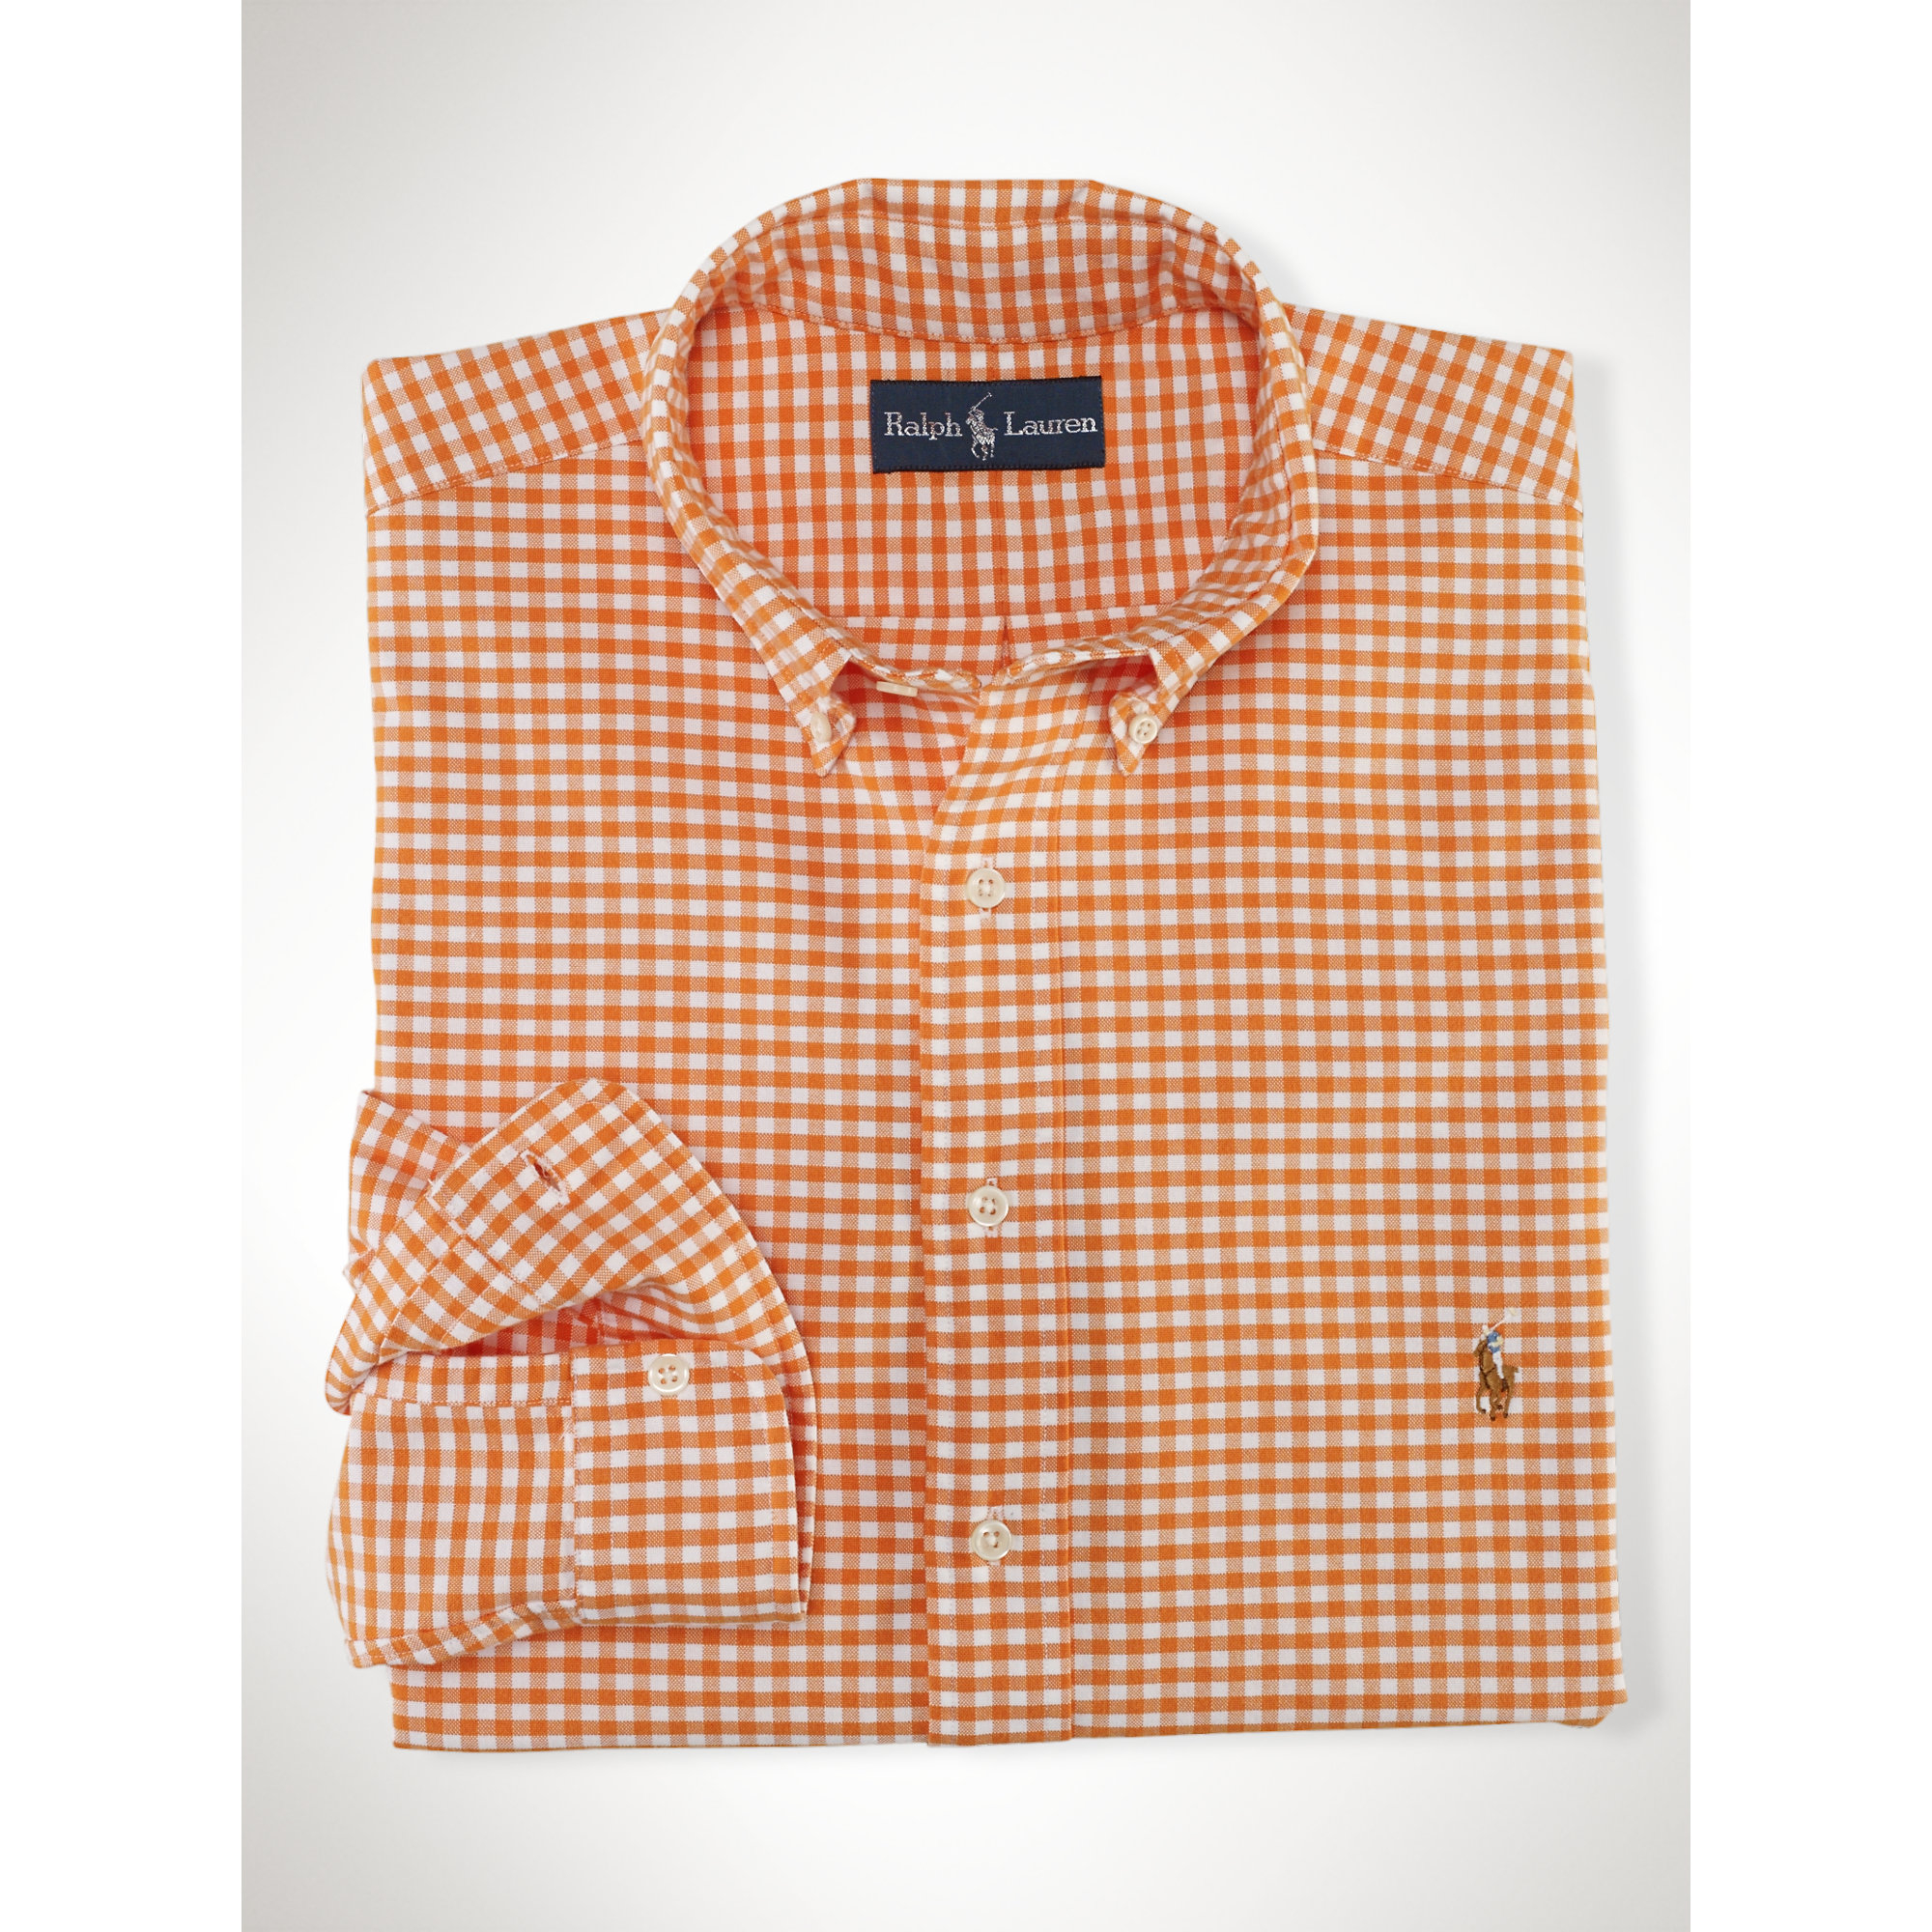 Polo Ralph Lauren Classic Gingham Oxford Shirt In Orange